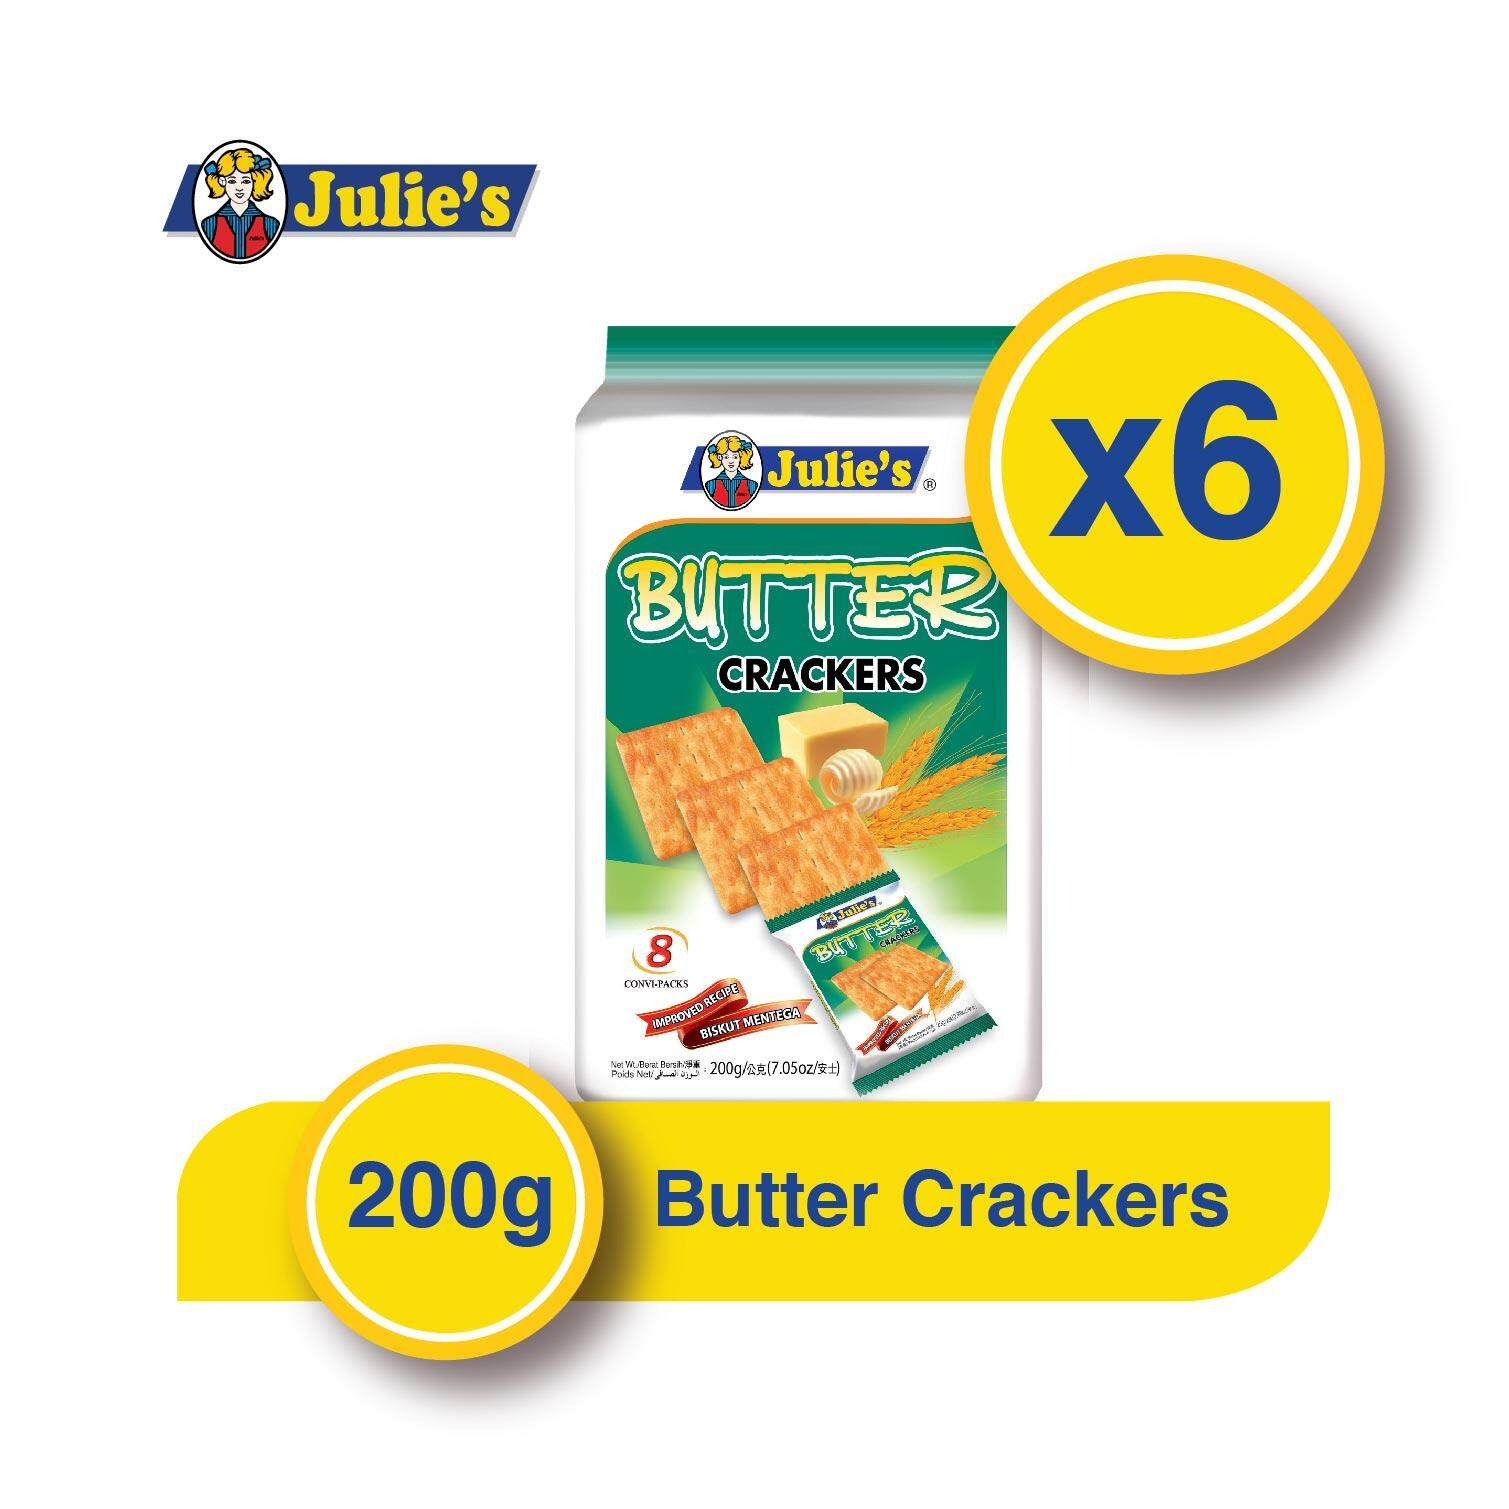 Julie's Butter Crackers 200g x 6 Packs + Free 5 pack Convi pack Biscuit